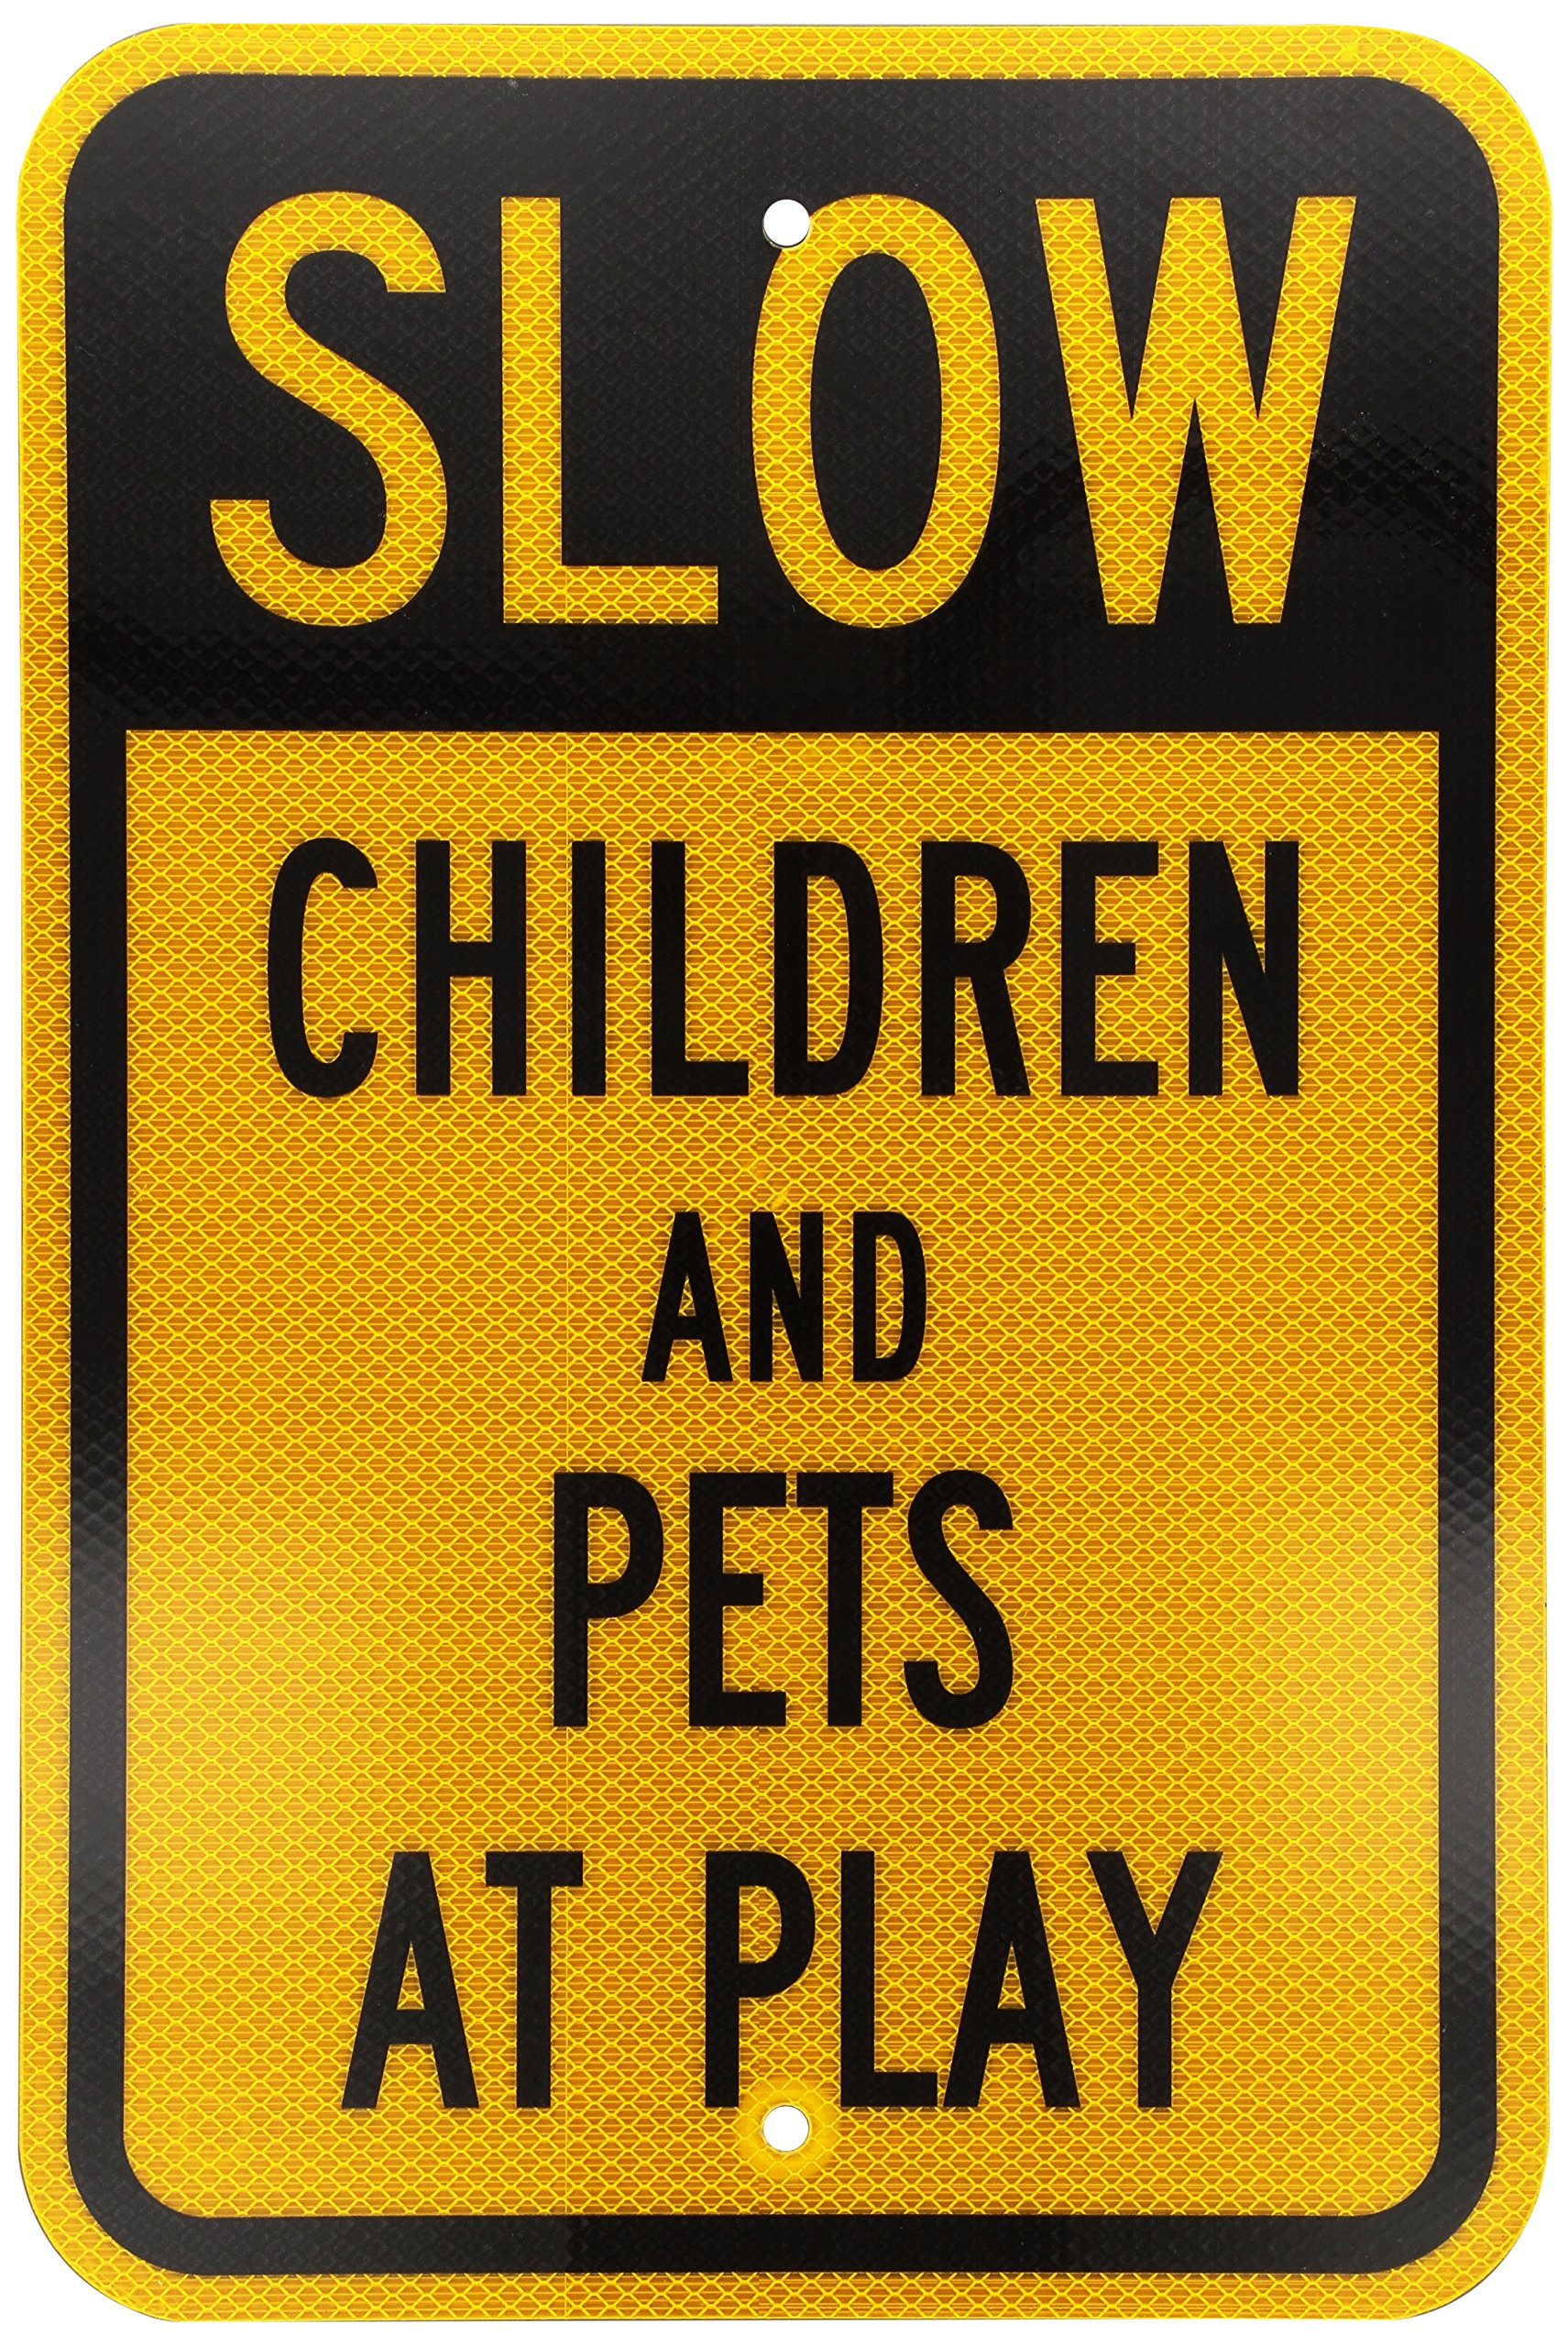 "SmartSign 3M High Intensity Grade Reflective Sign, Legend ""Slow - Children and Pets at Play"", 18"" high x 12"" wide, Black on Yellow"